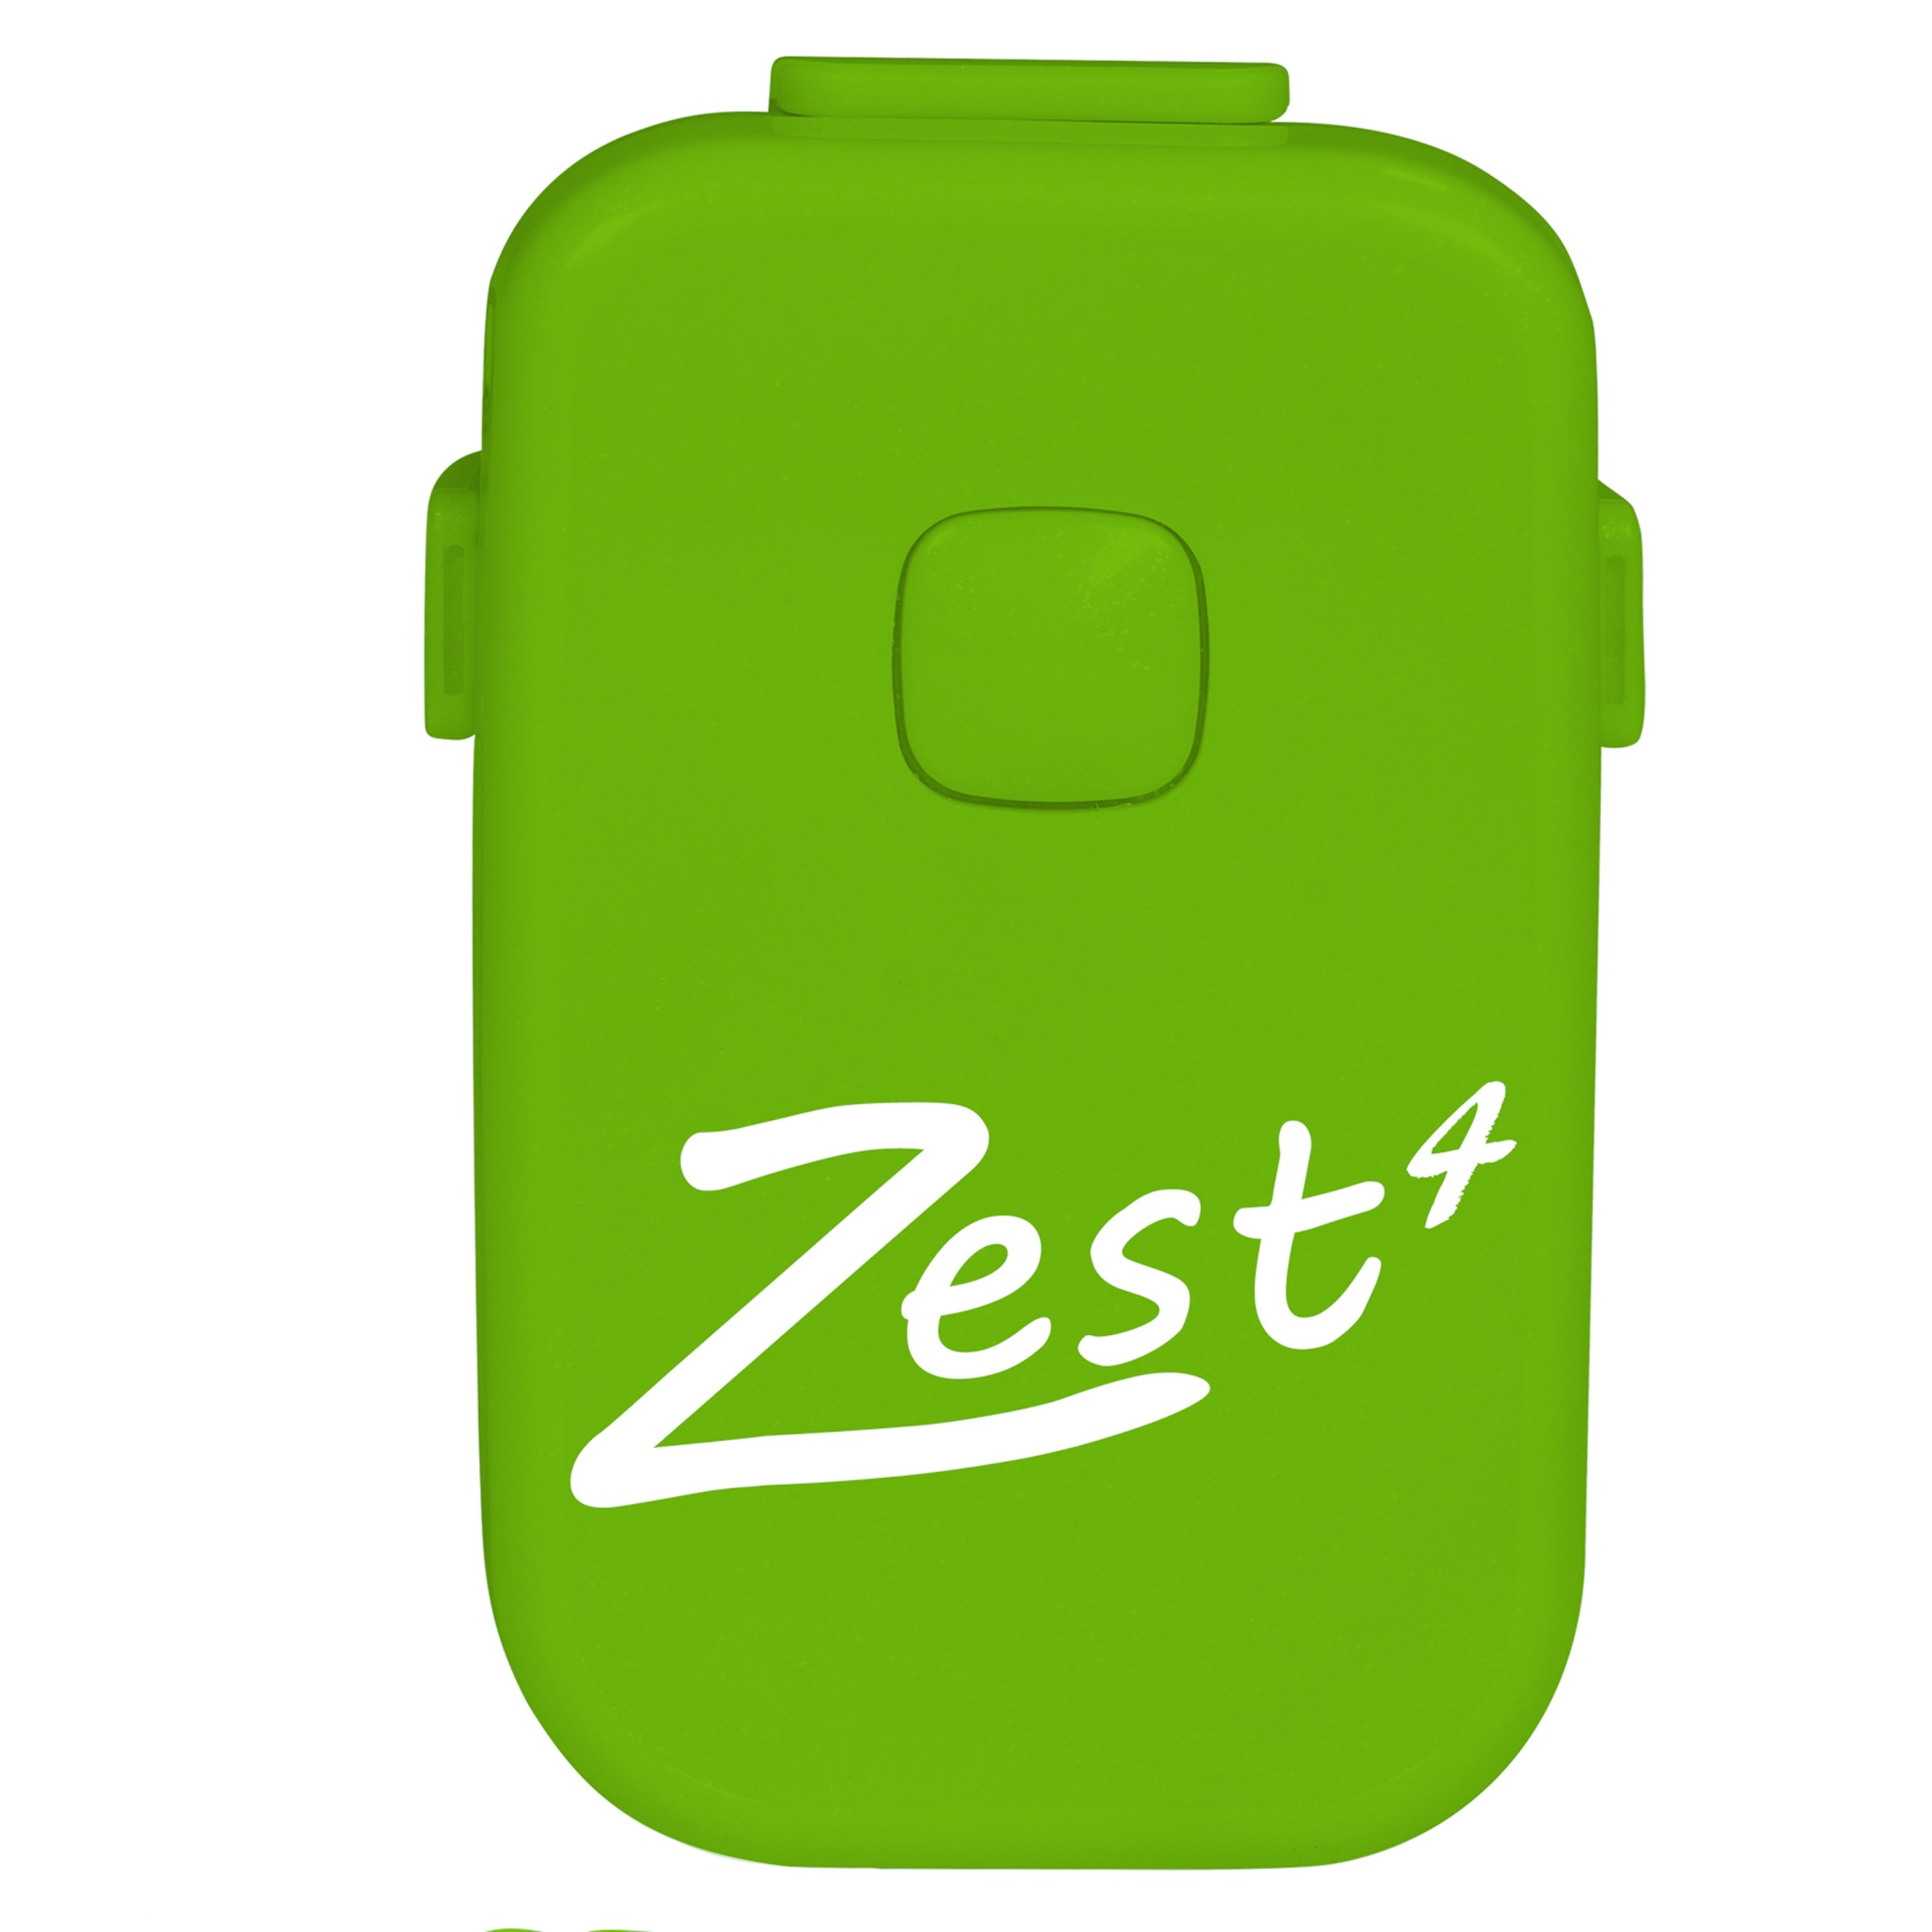 Zest 4 Bedwetting Alarm (Enuresis Alarm) with 8 Tones and Strong Vibration to Stop Bedwetting in Boys, Girls and Deep Sleepers by Zest